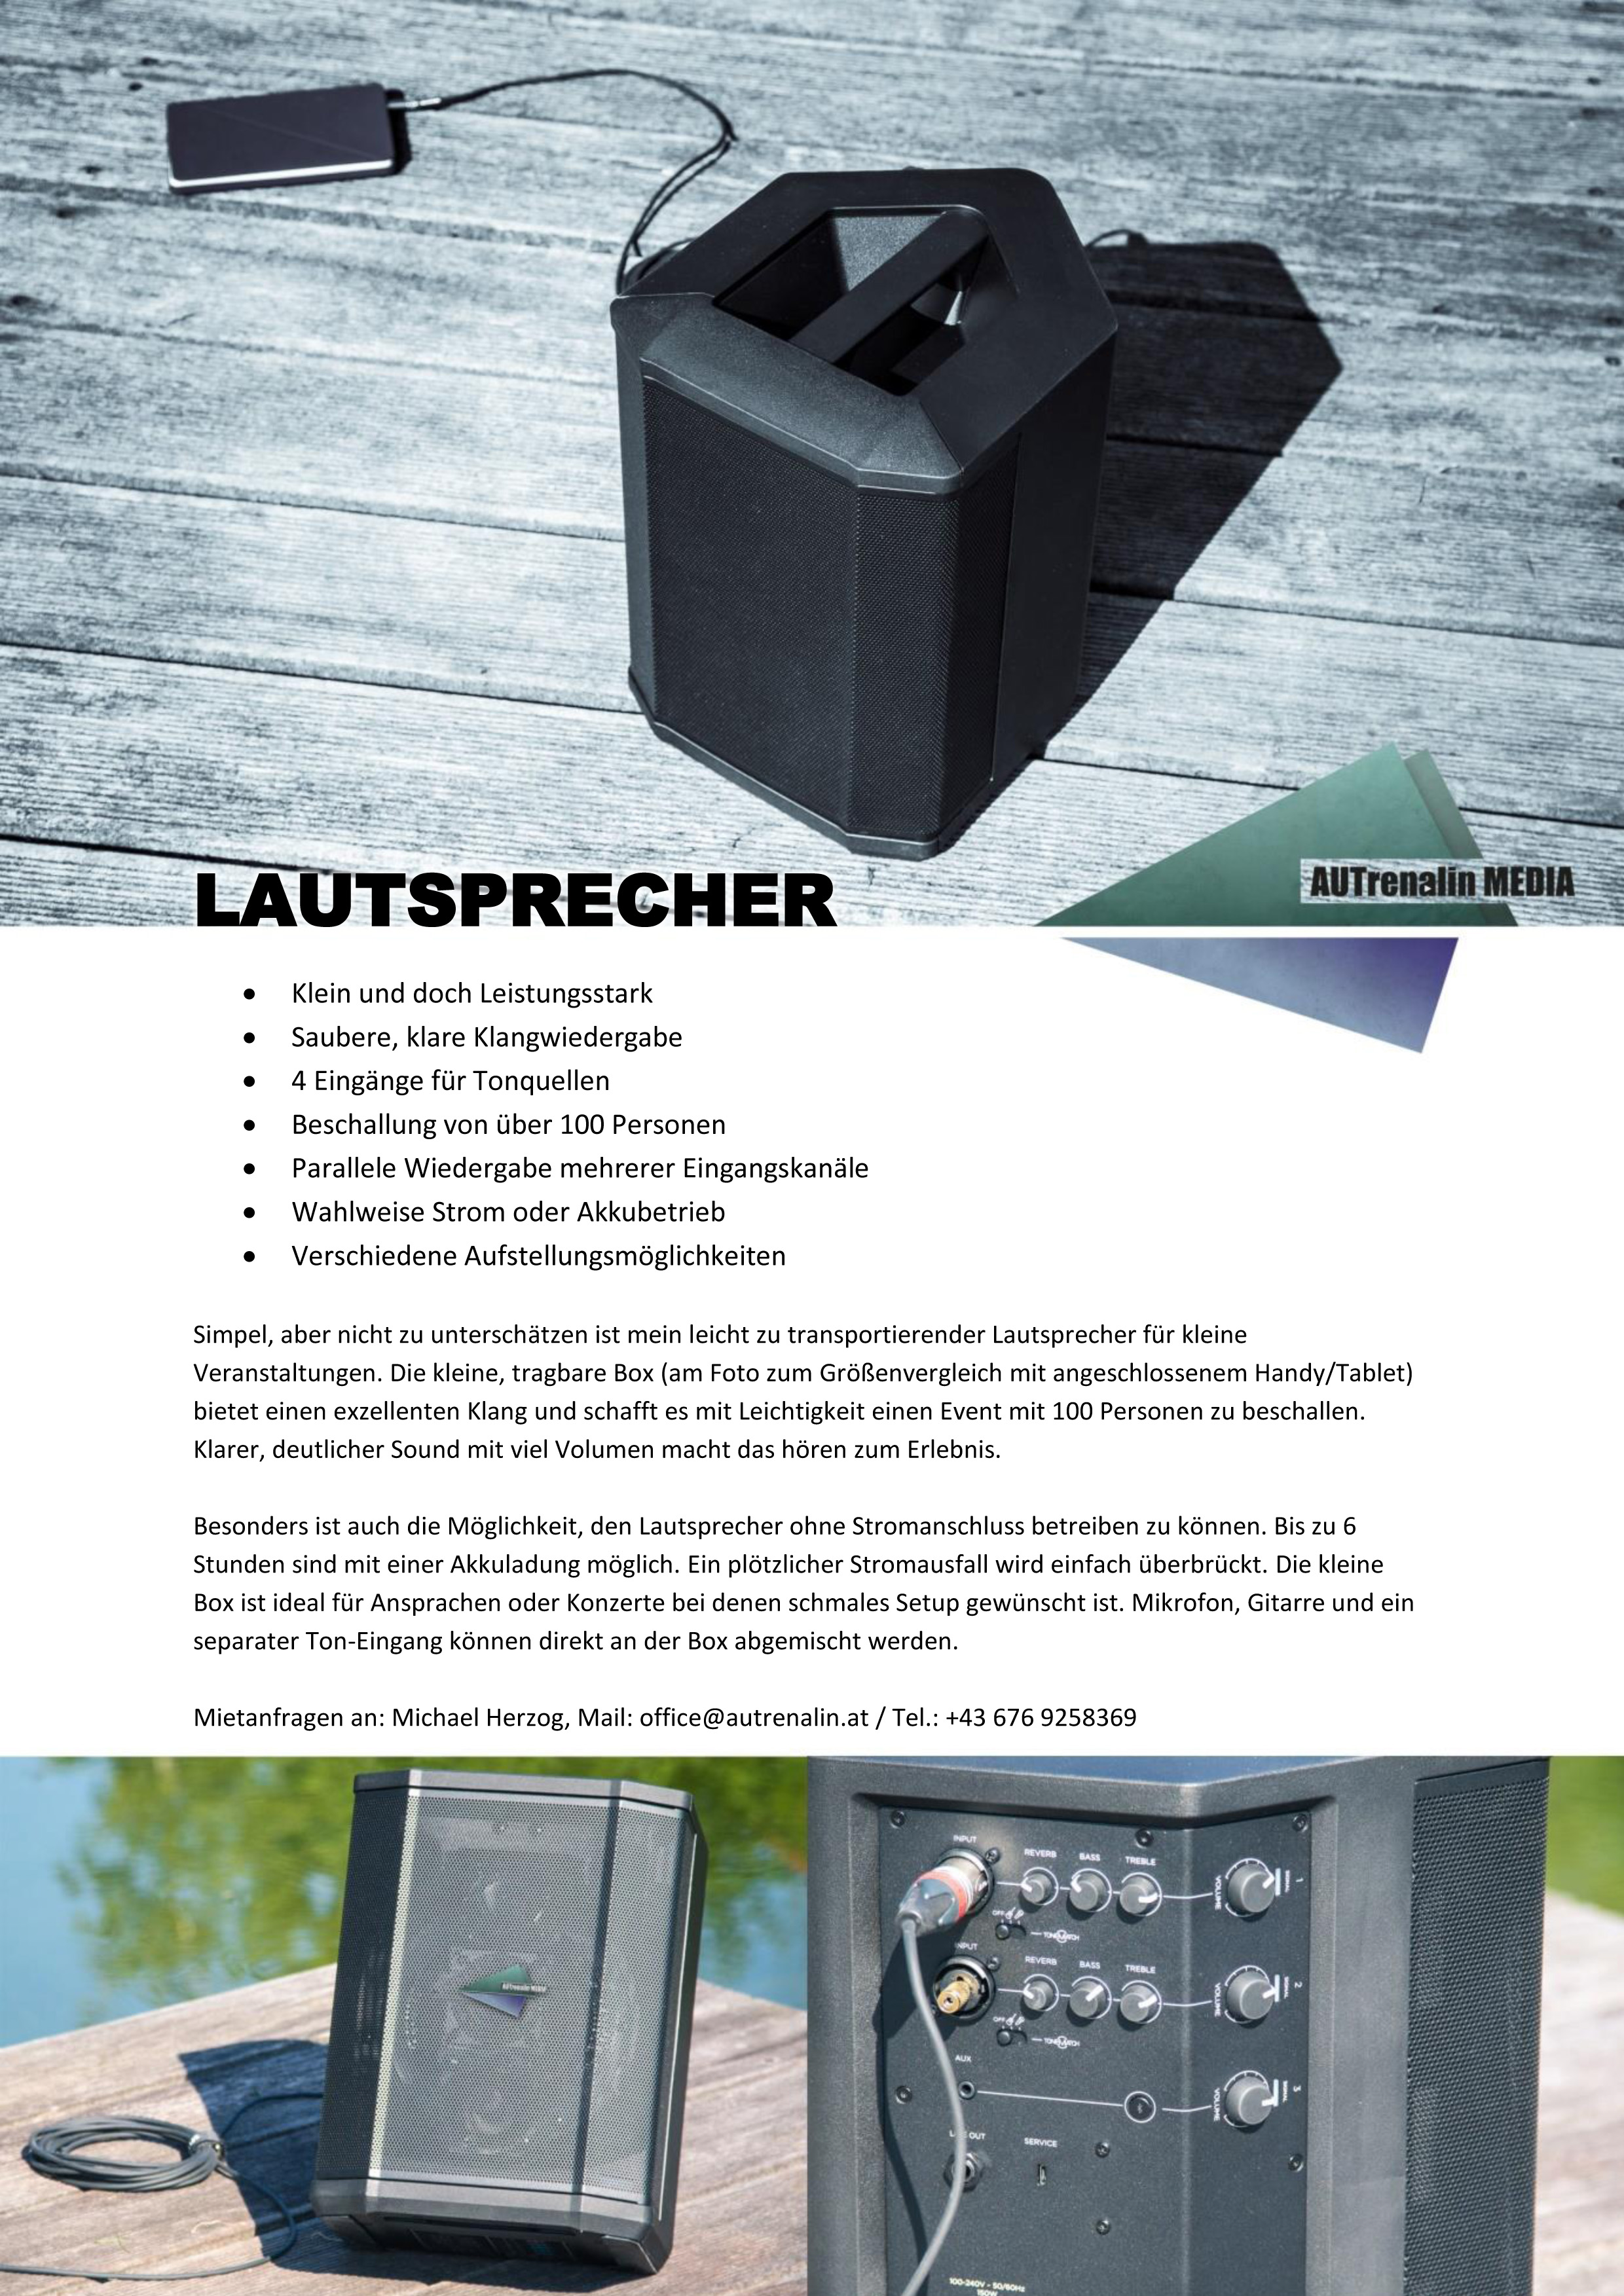 AUTrenalinMEDIA-Equipment-Lautsprecher.jpg